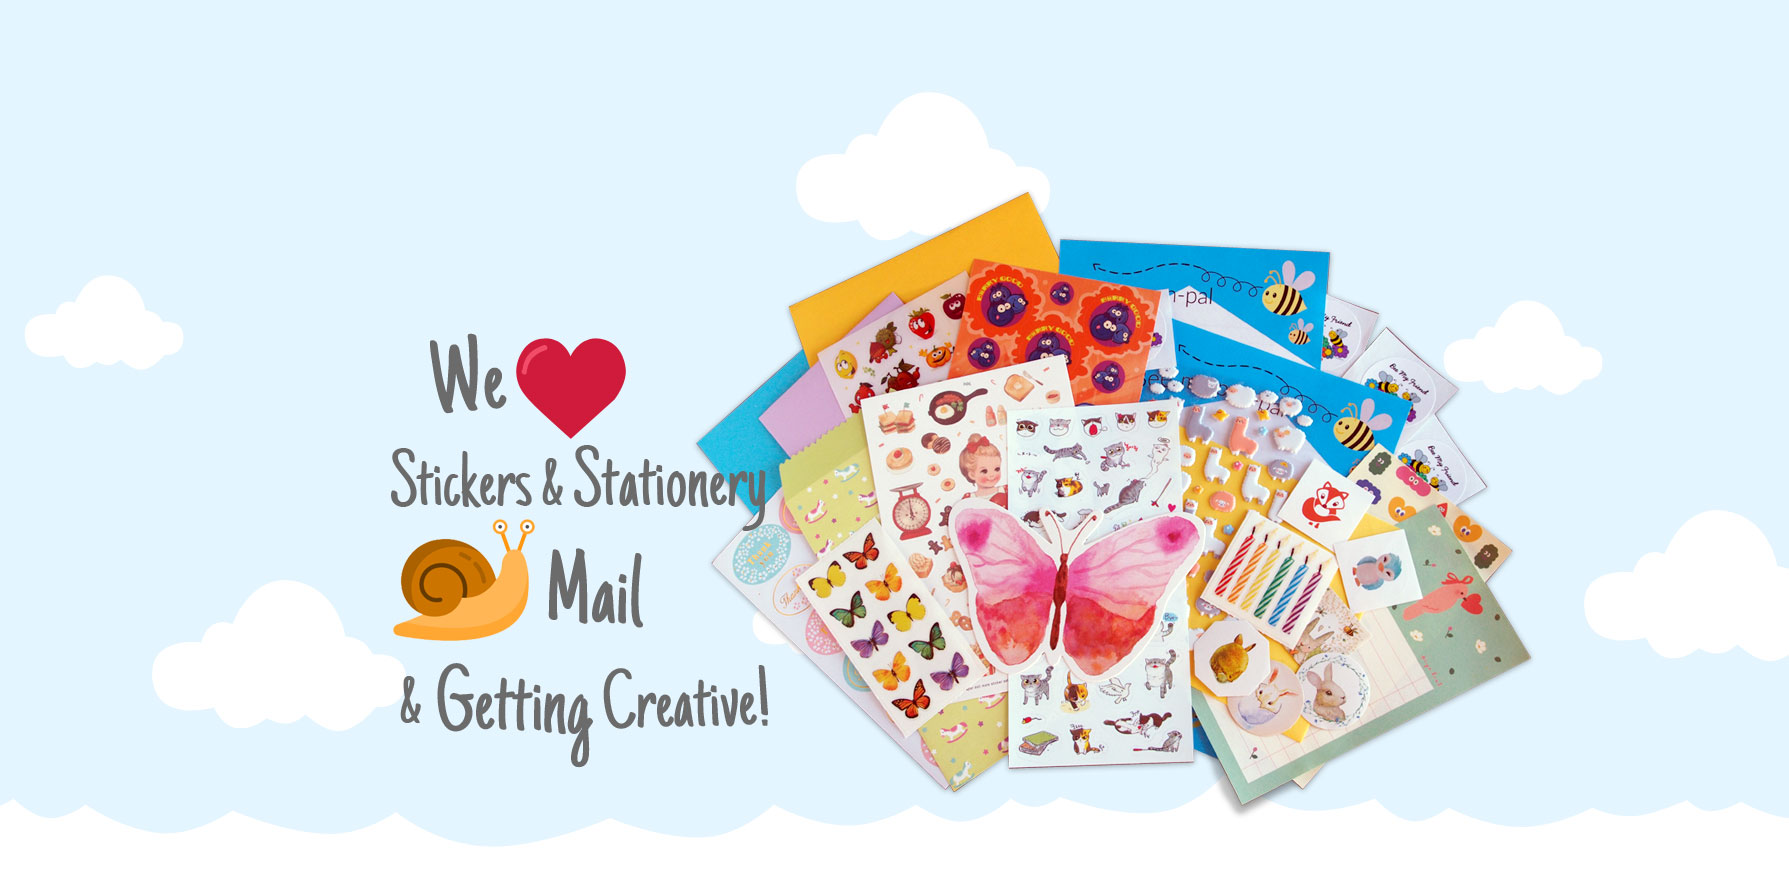 Sticker & Stationery Slider